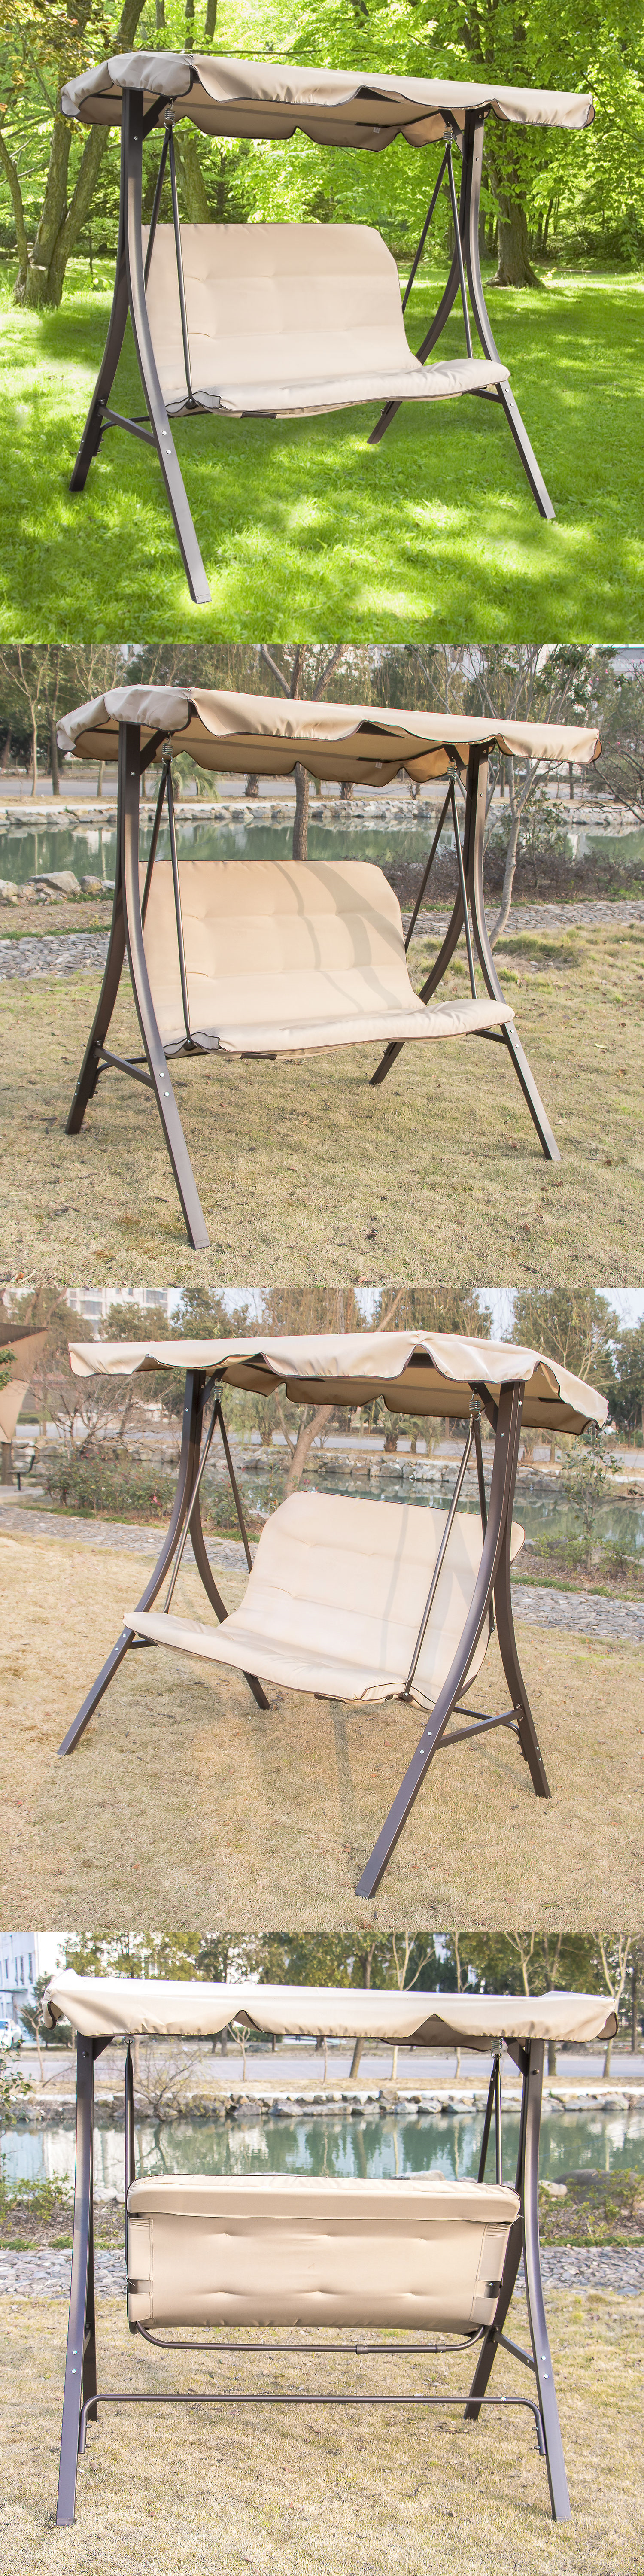 Benches 79678: Garden Outdoor Patio Porch Swing Hammock Chair W Canopy Yard  Furniture Loveseat